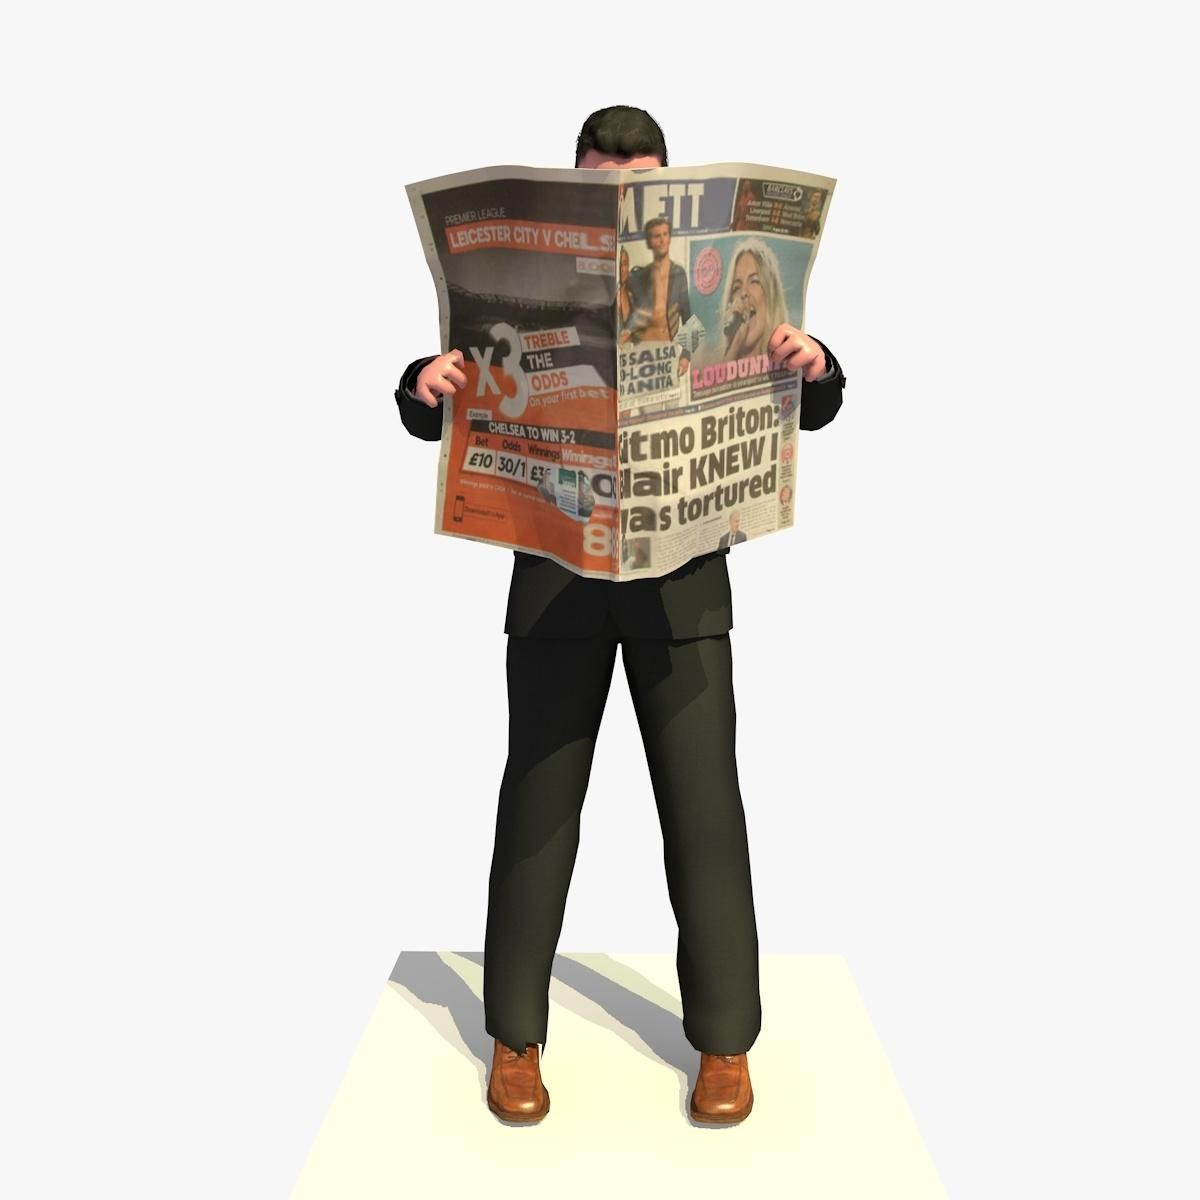 Bugatti Veyron Grand Sport World Record Edition 2011 3d: Animated Business Man Reading A Newspaper Standing